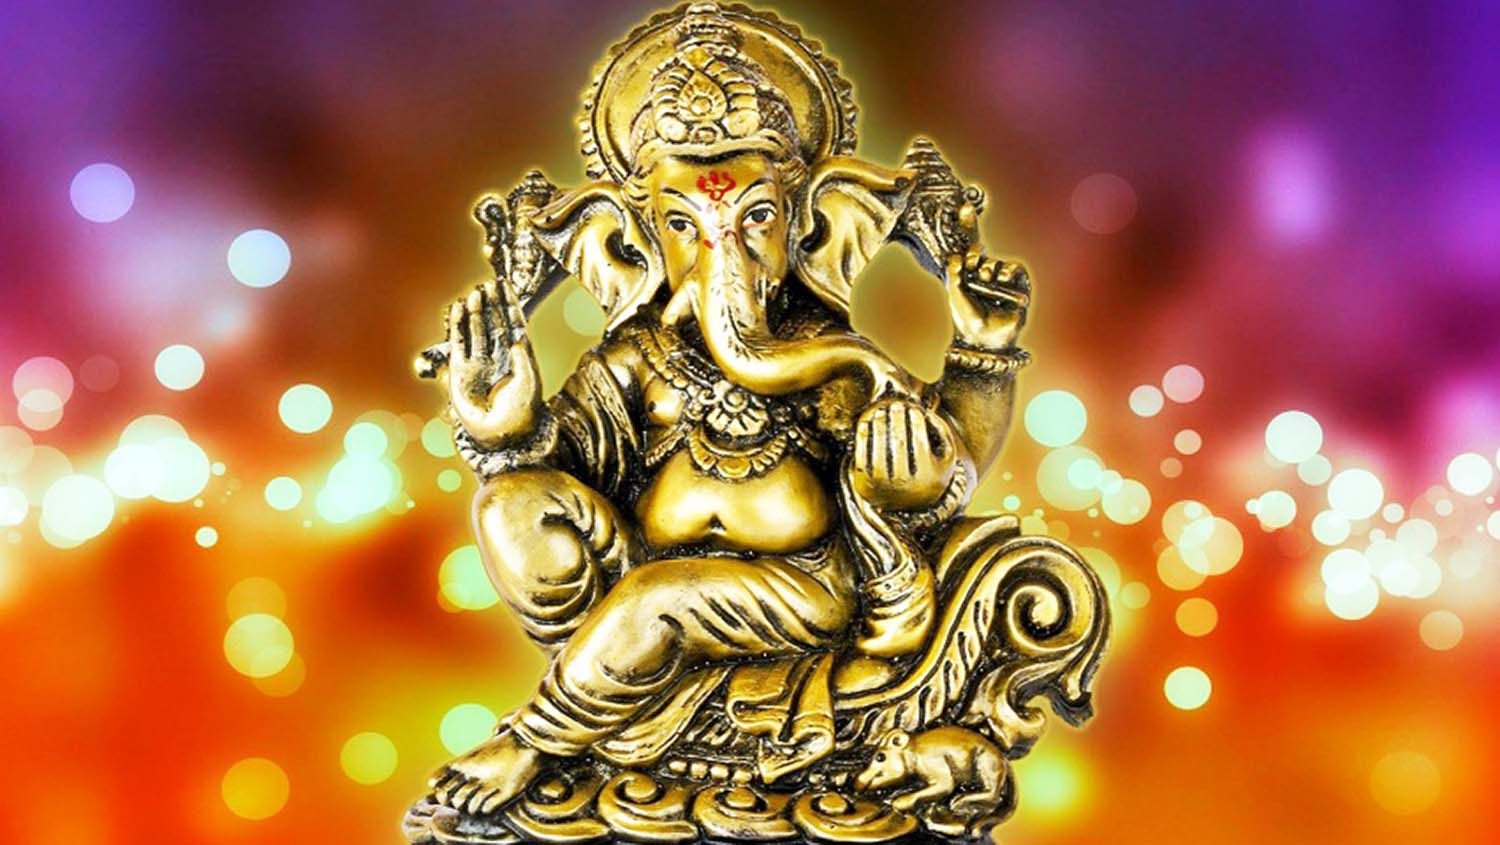 Lord Vighnaharta Ganpati wallpaper!